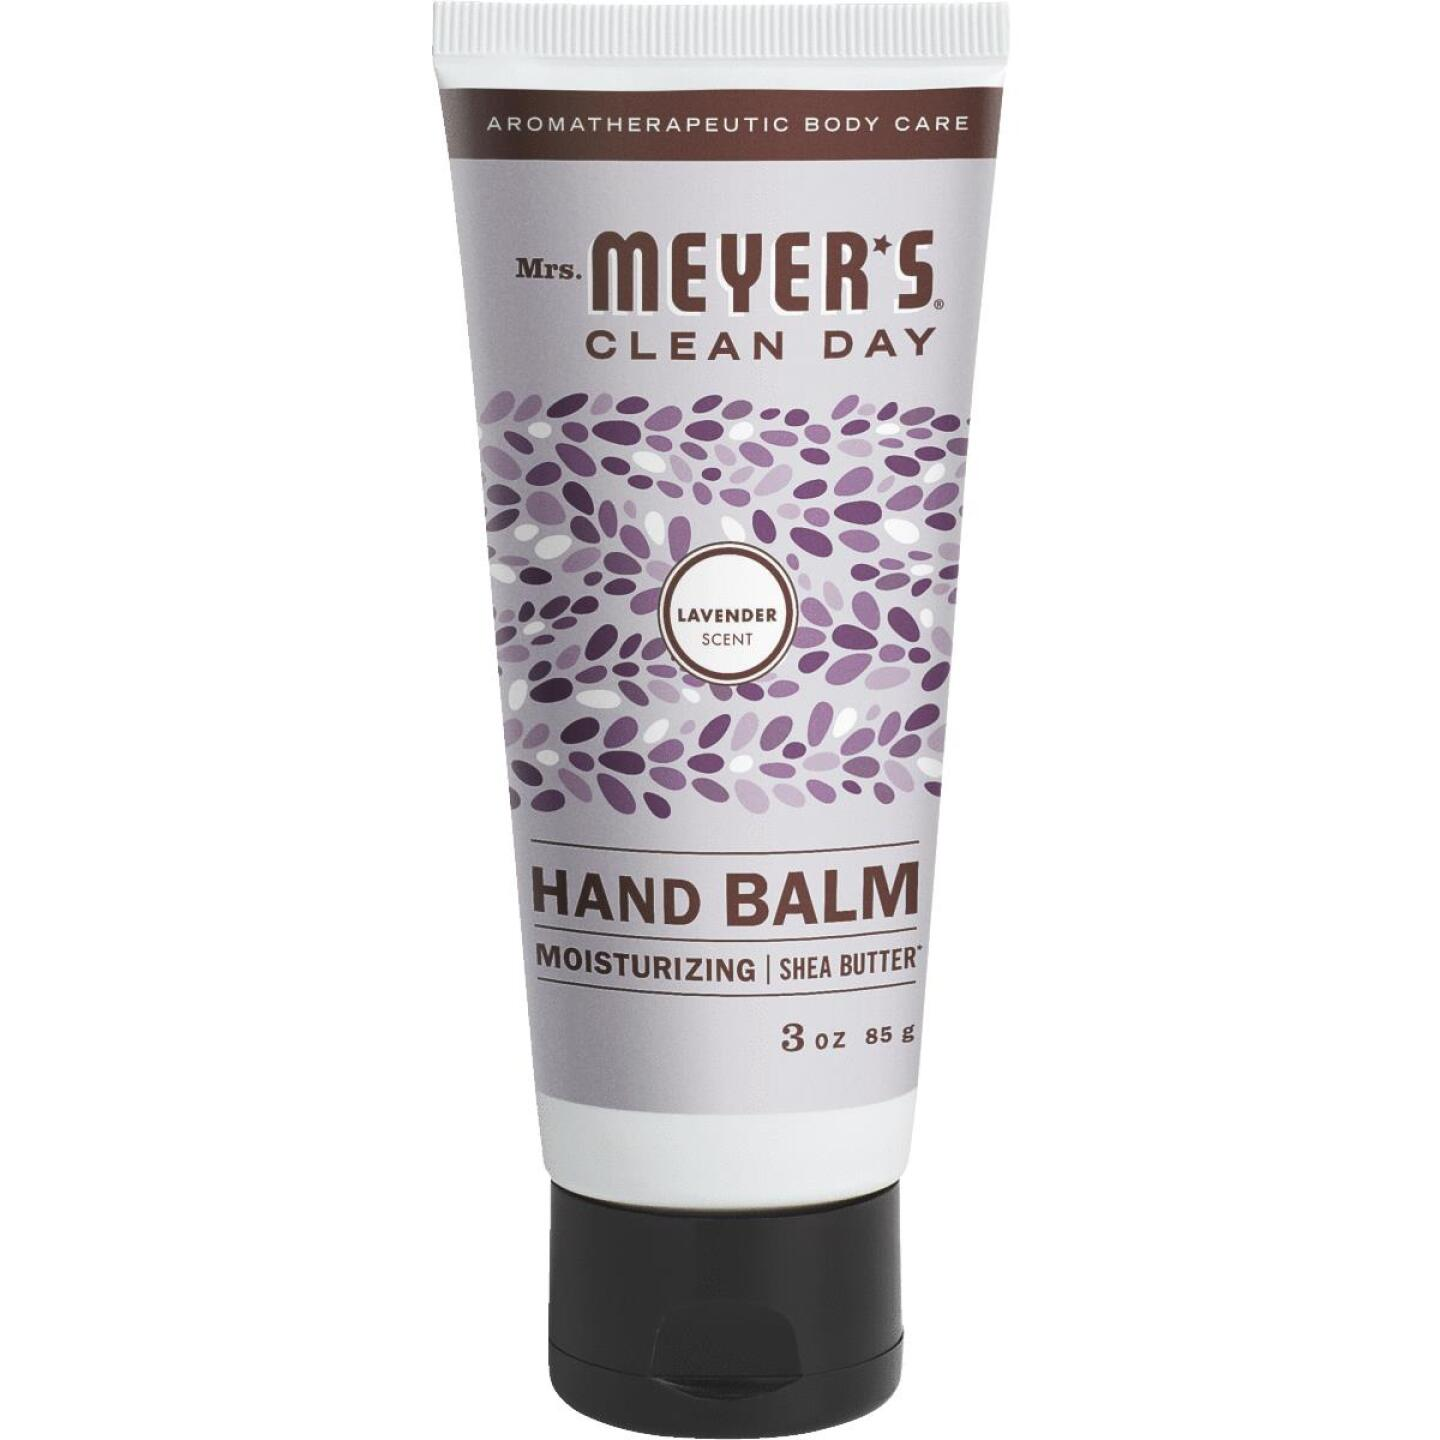 Mrs. Meyer's Clean Day 3 Oz. Lavender Hand Balm Image 1